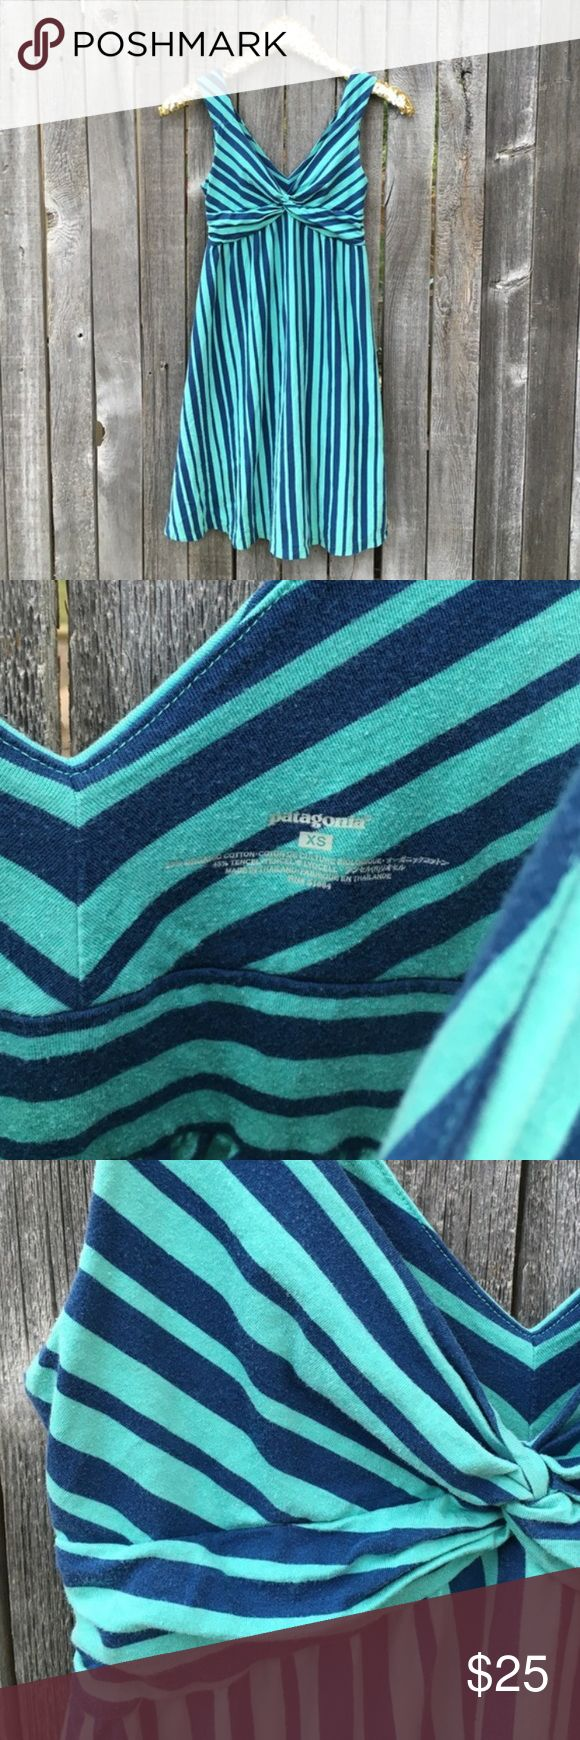 "{patagonia} Navy & Turquoise Striped Sundress XS EUC! A little bit of wash wear, barely noticeable. The most perfect dress. Comfortable, cute and classy! Transitions seamlessly under a cardi with boots for Winter, or alone with sandals in the summer! Flared A-Line, skater style skirt with empire waist. Feminine and trendy criss cross detail at bust. 14"" pit to pit, 35"" shoulder to hem length. Offers warmly welcomed! Patagonia Dresses Mini"